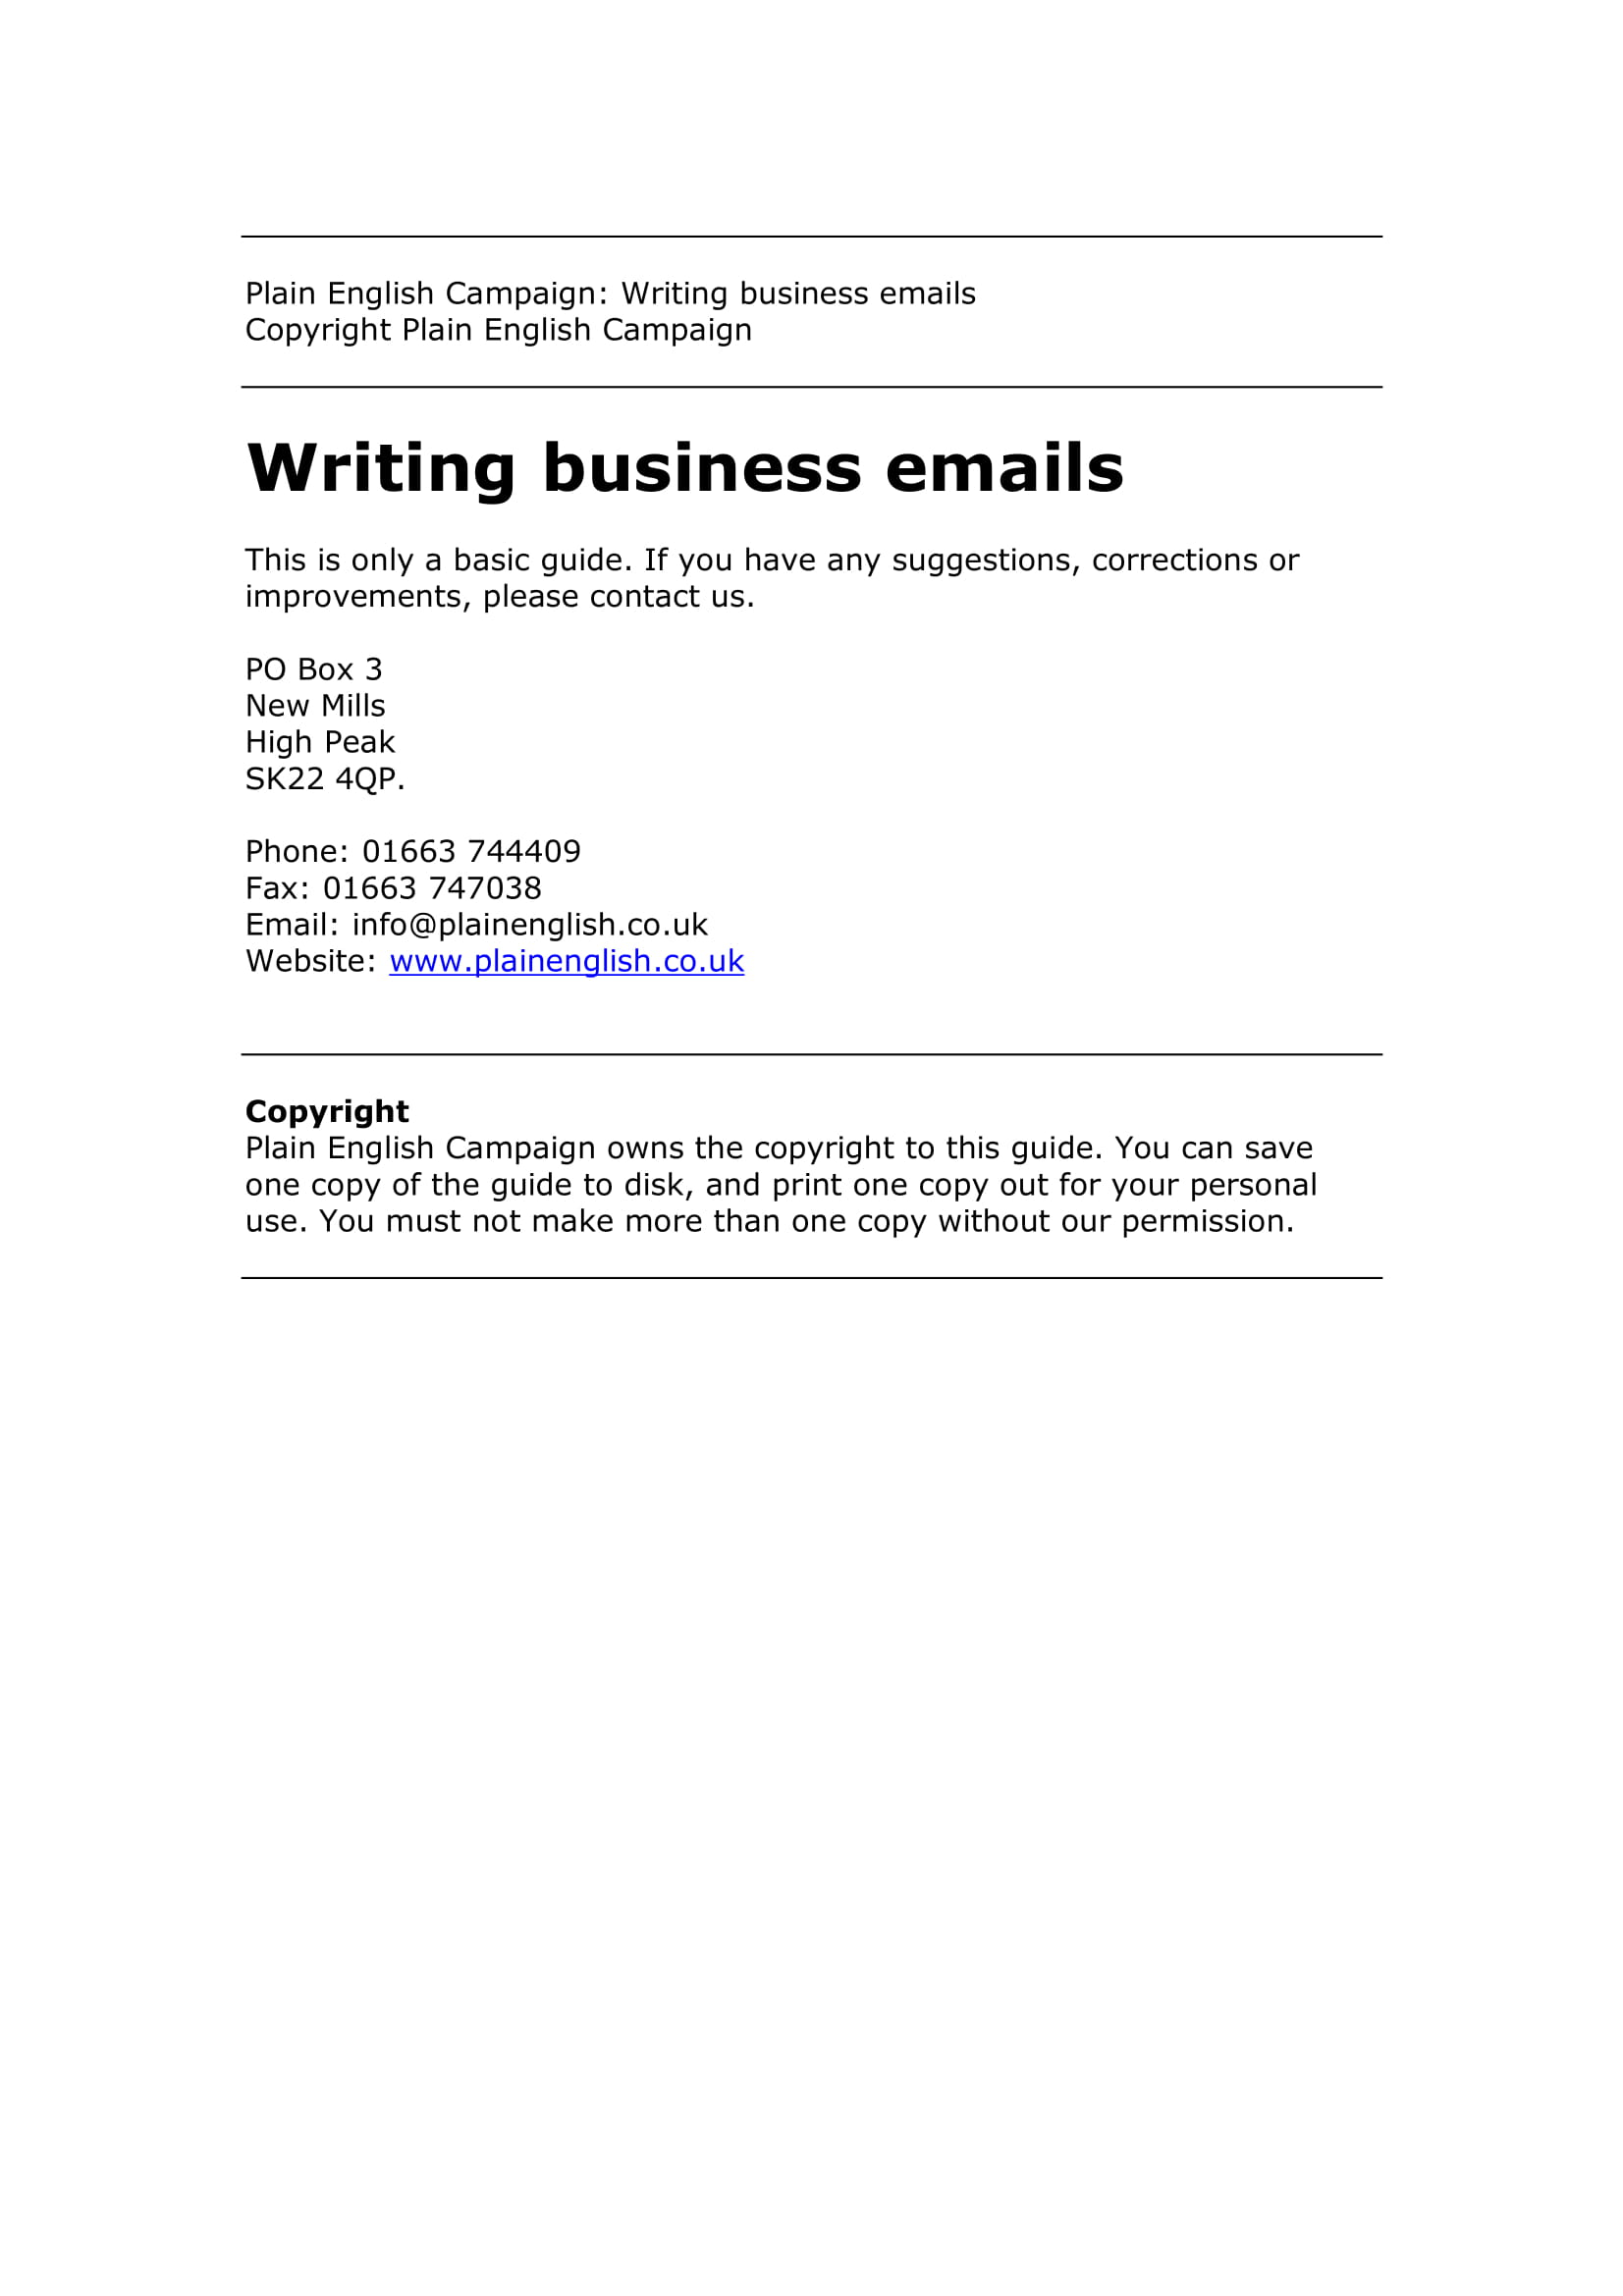 concise business email writing example